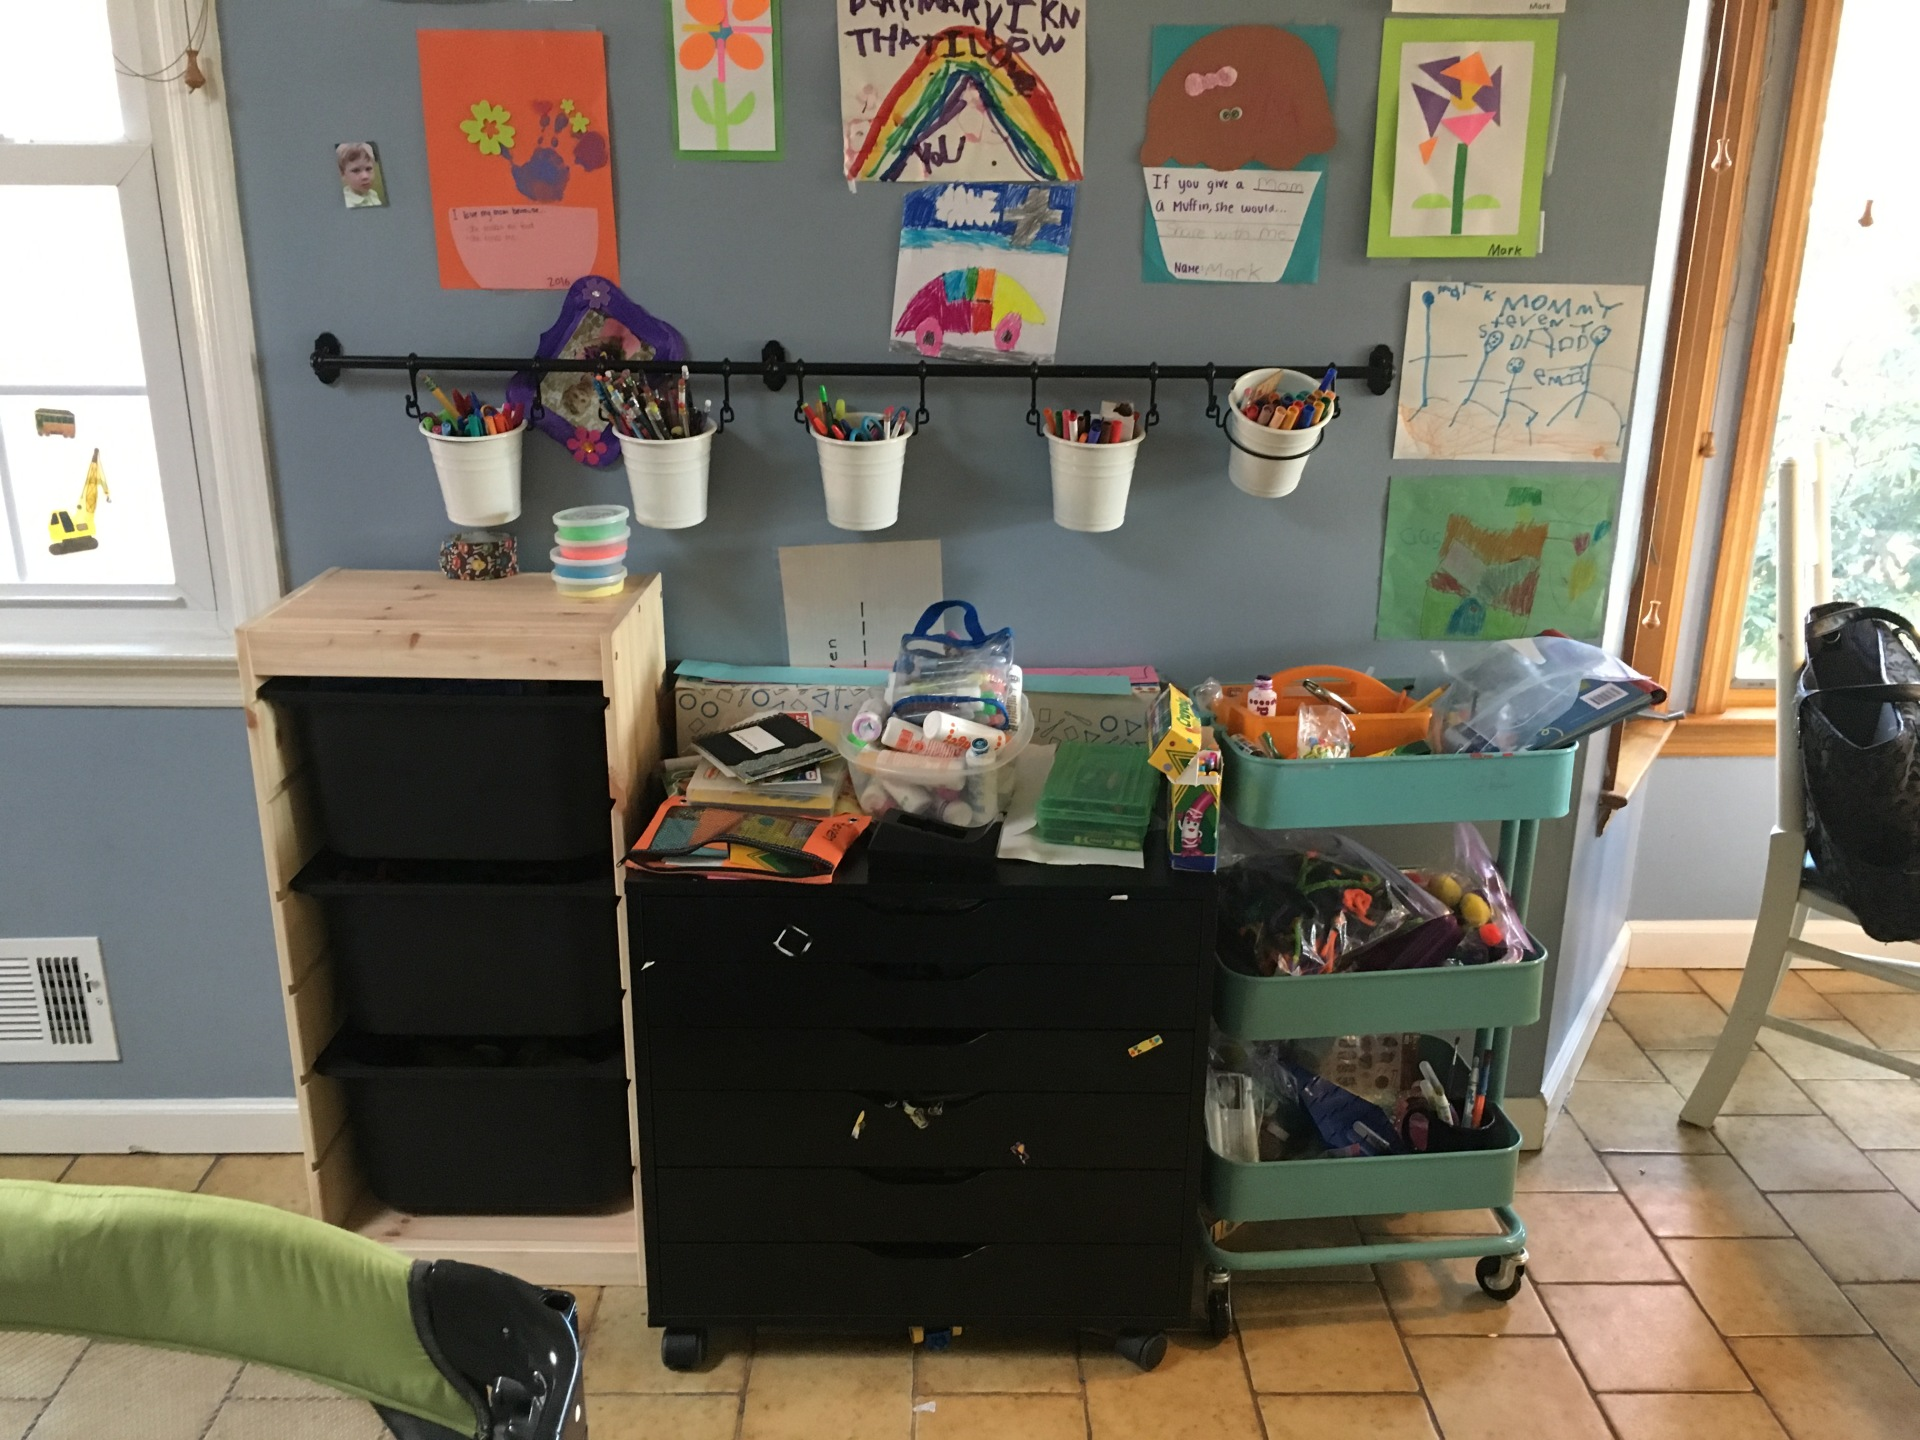 The imagination station!  The kids always flock to the kitchen anyway... Christine was so smart to set it up here!